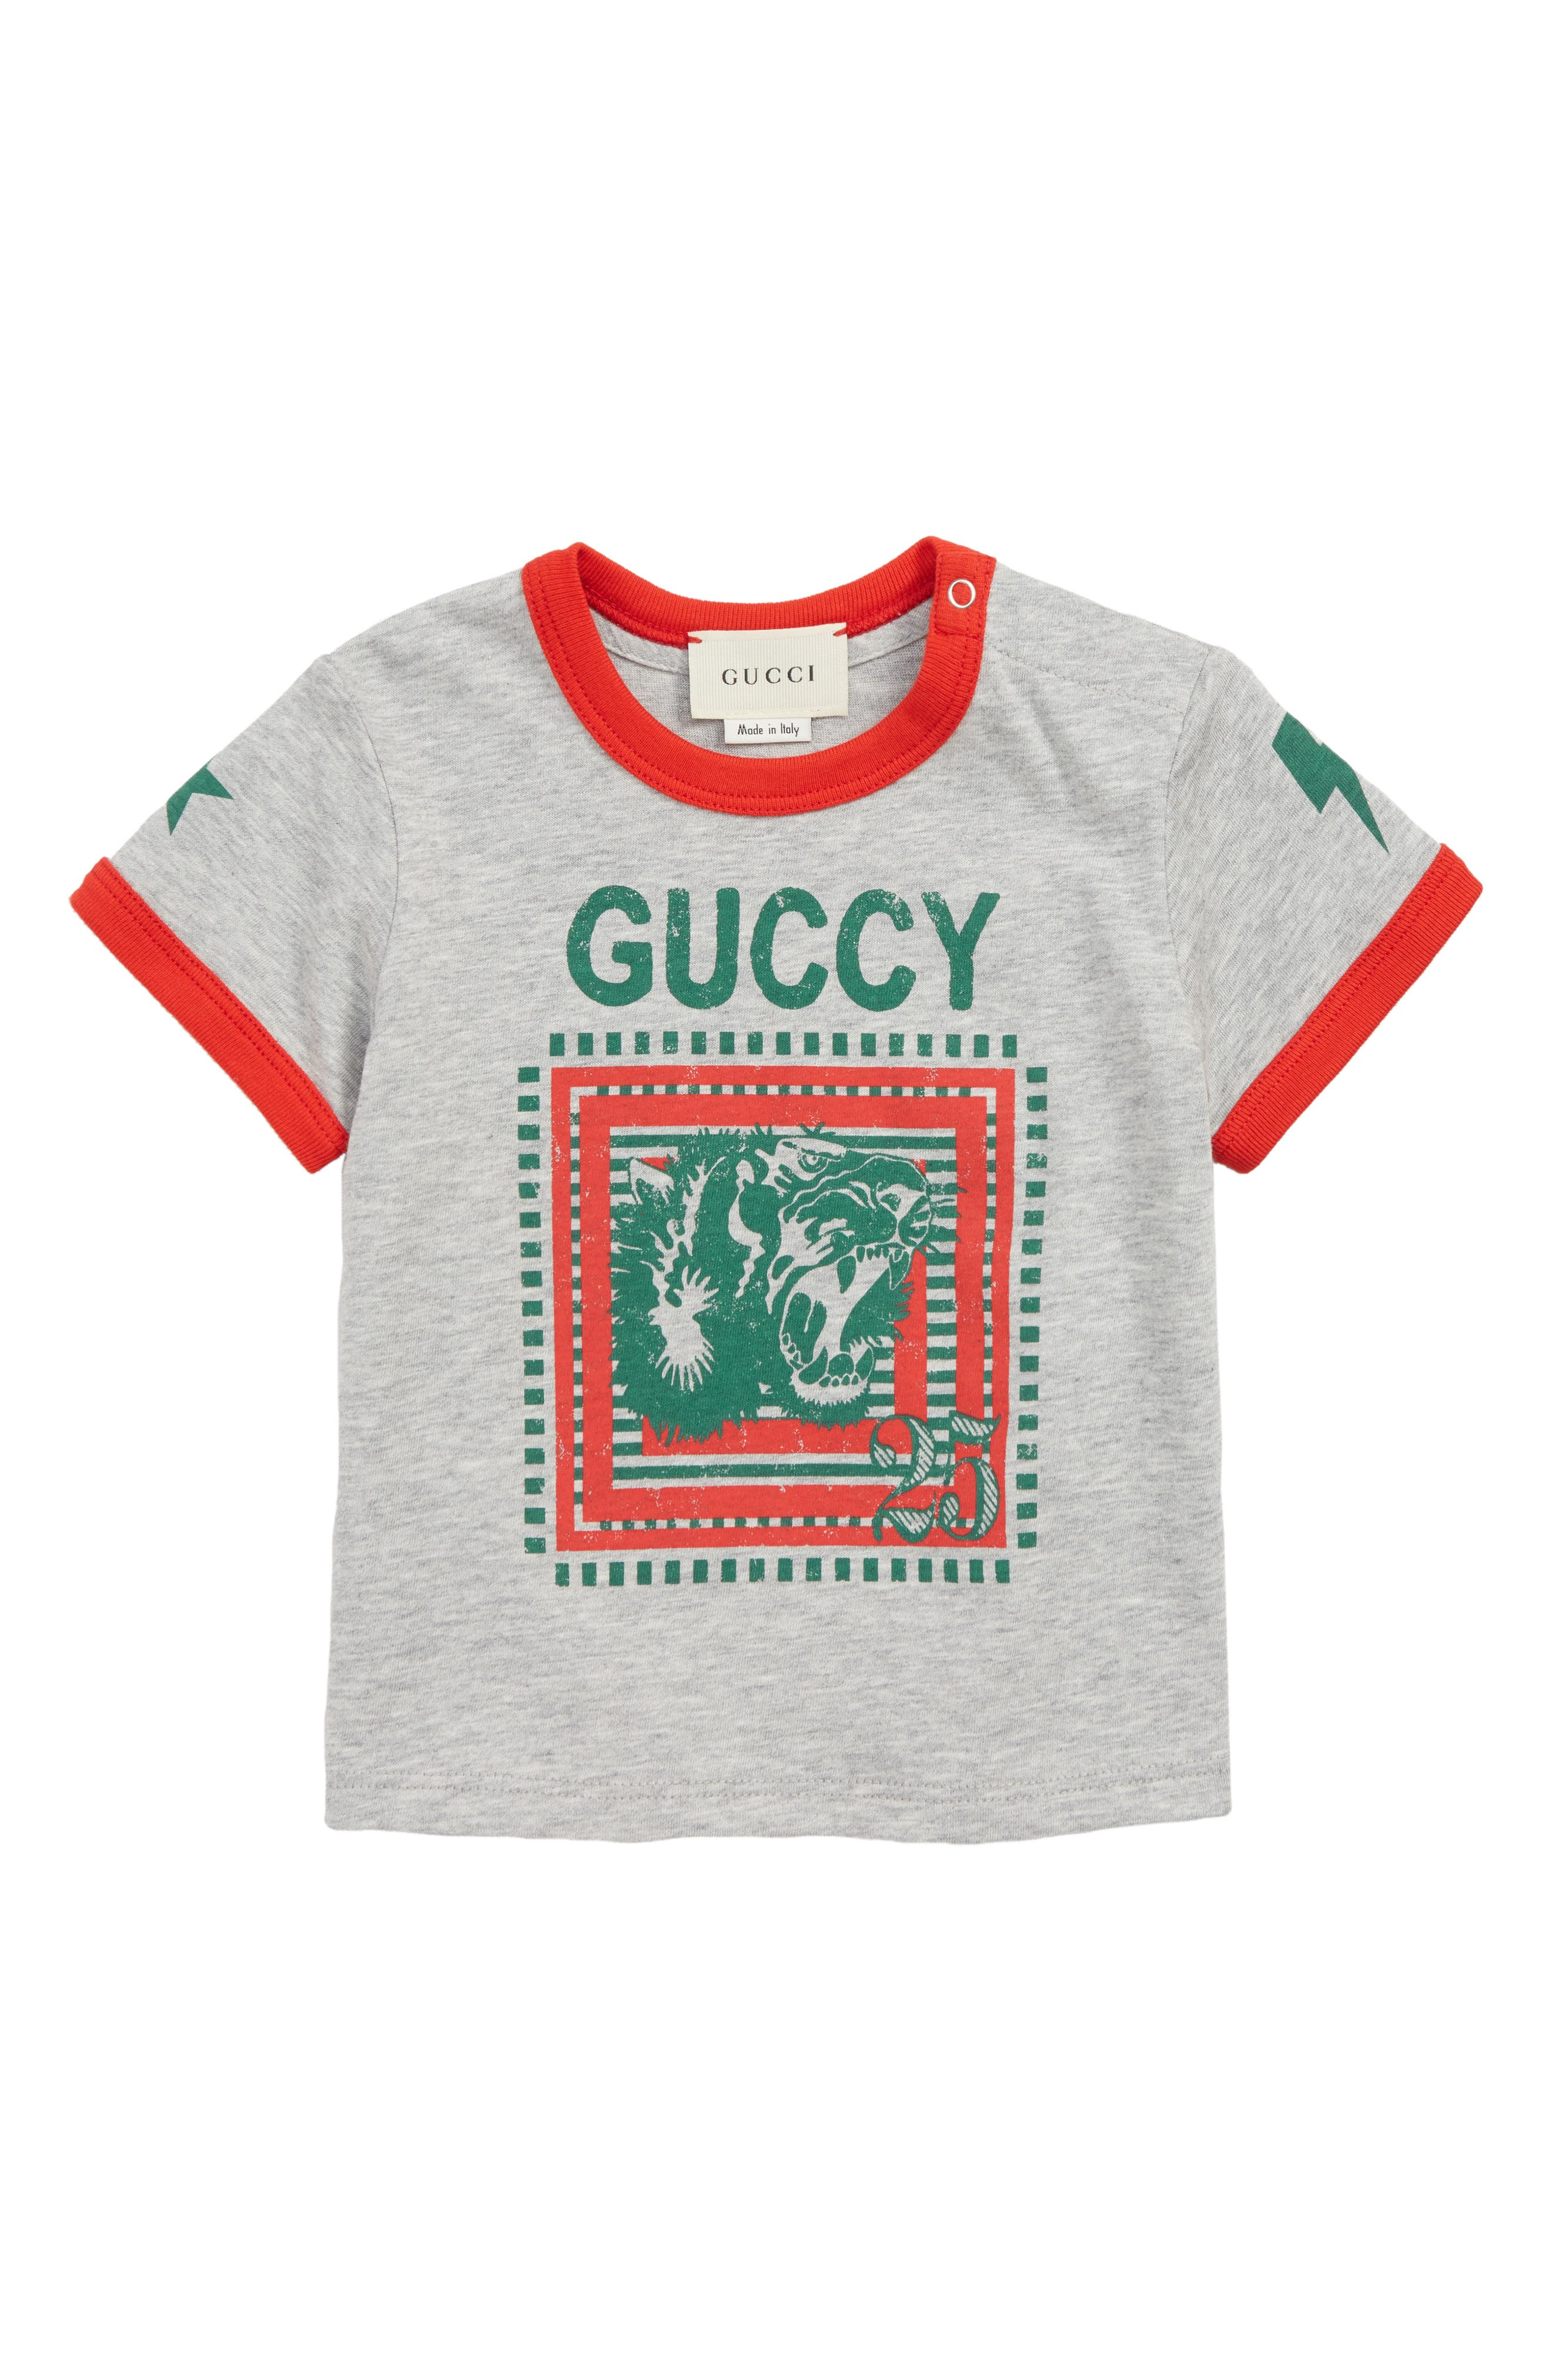 Guccy T-Shirt,                             Main thumbnail 1, color,                             LIGHT GREY/ CANDY APPLE